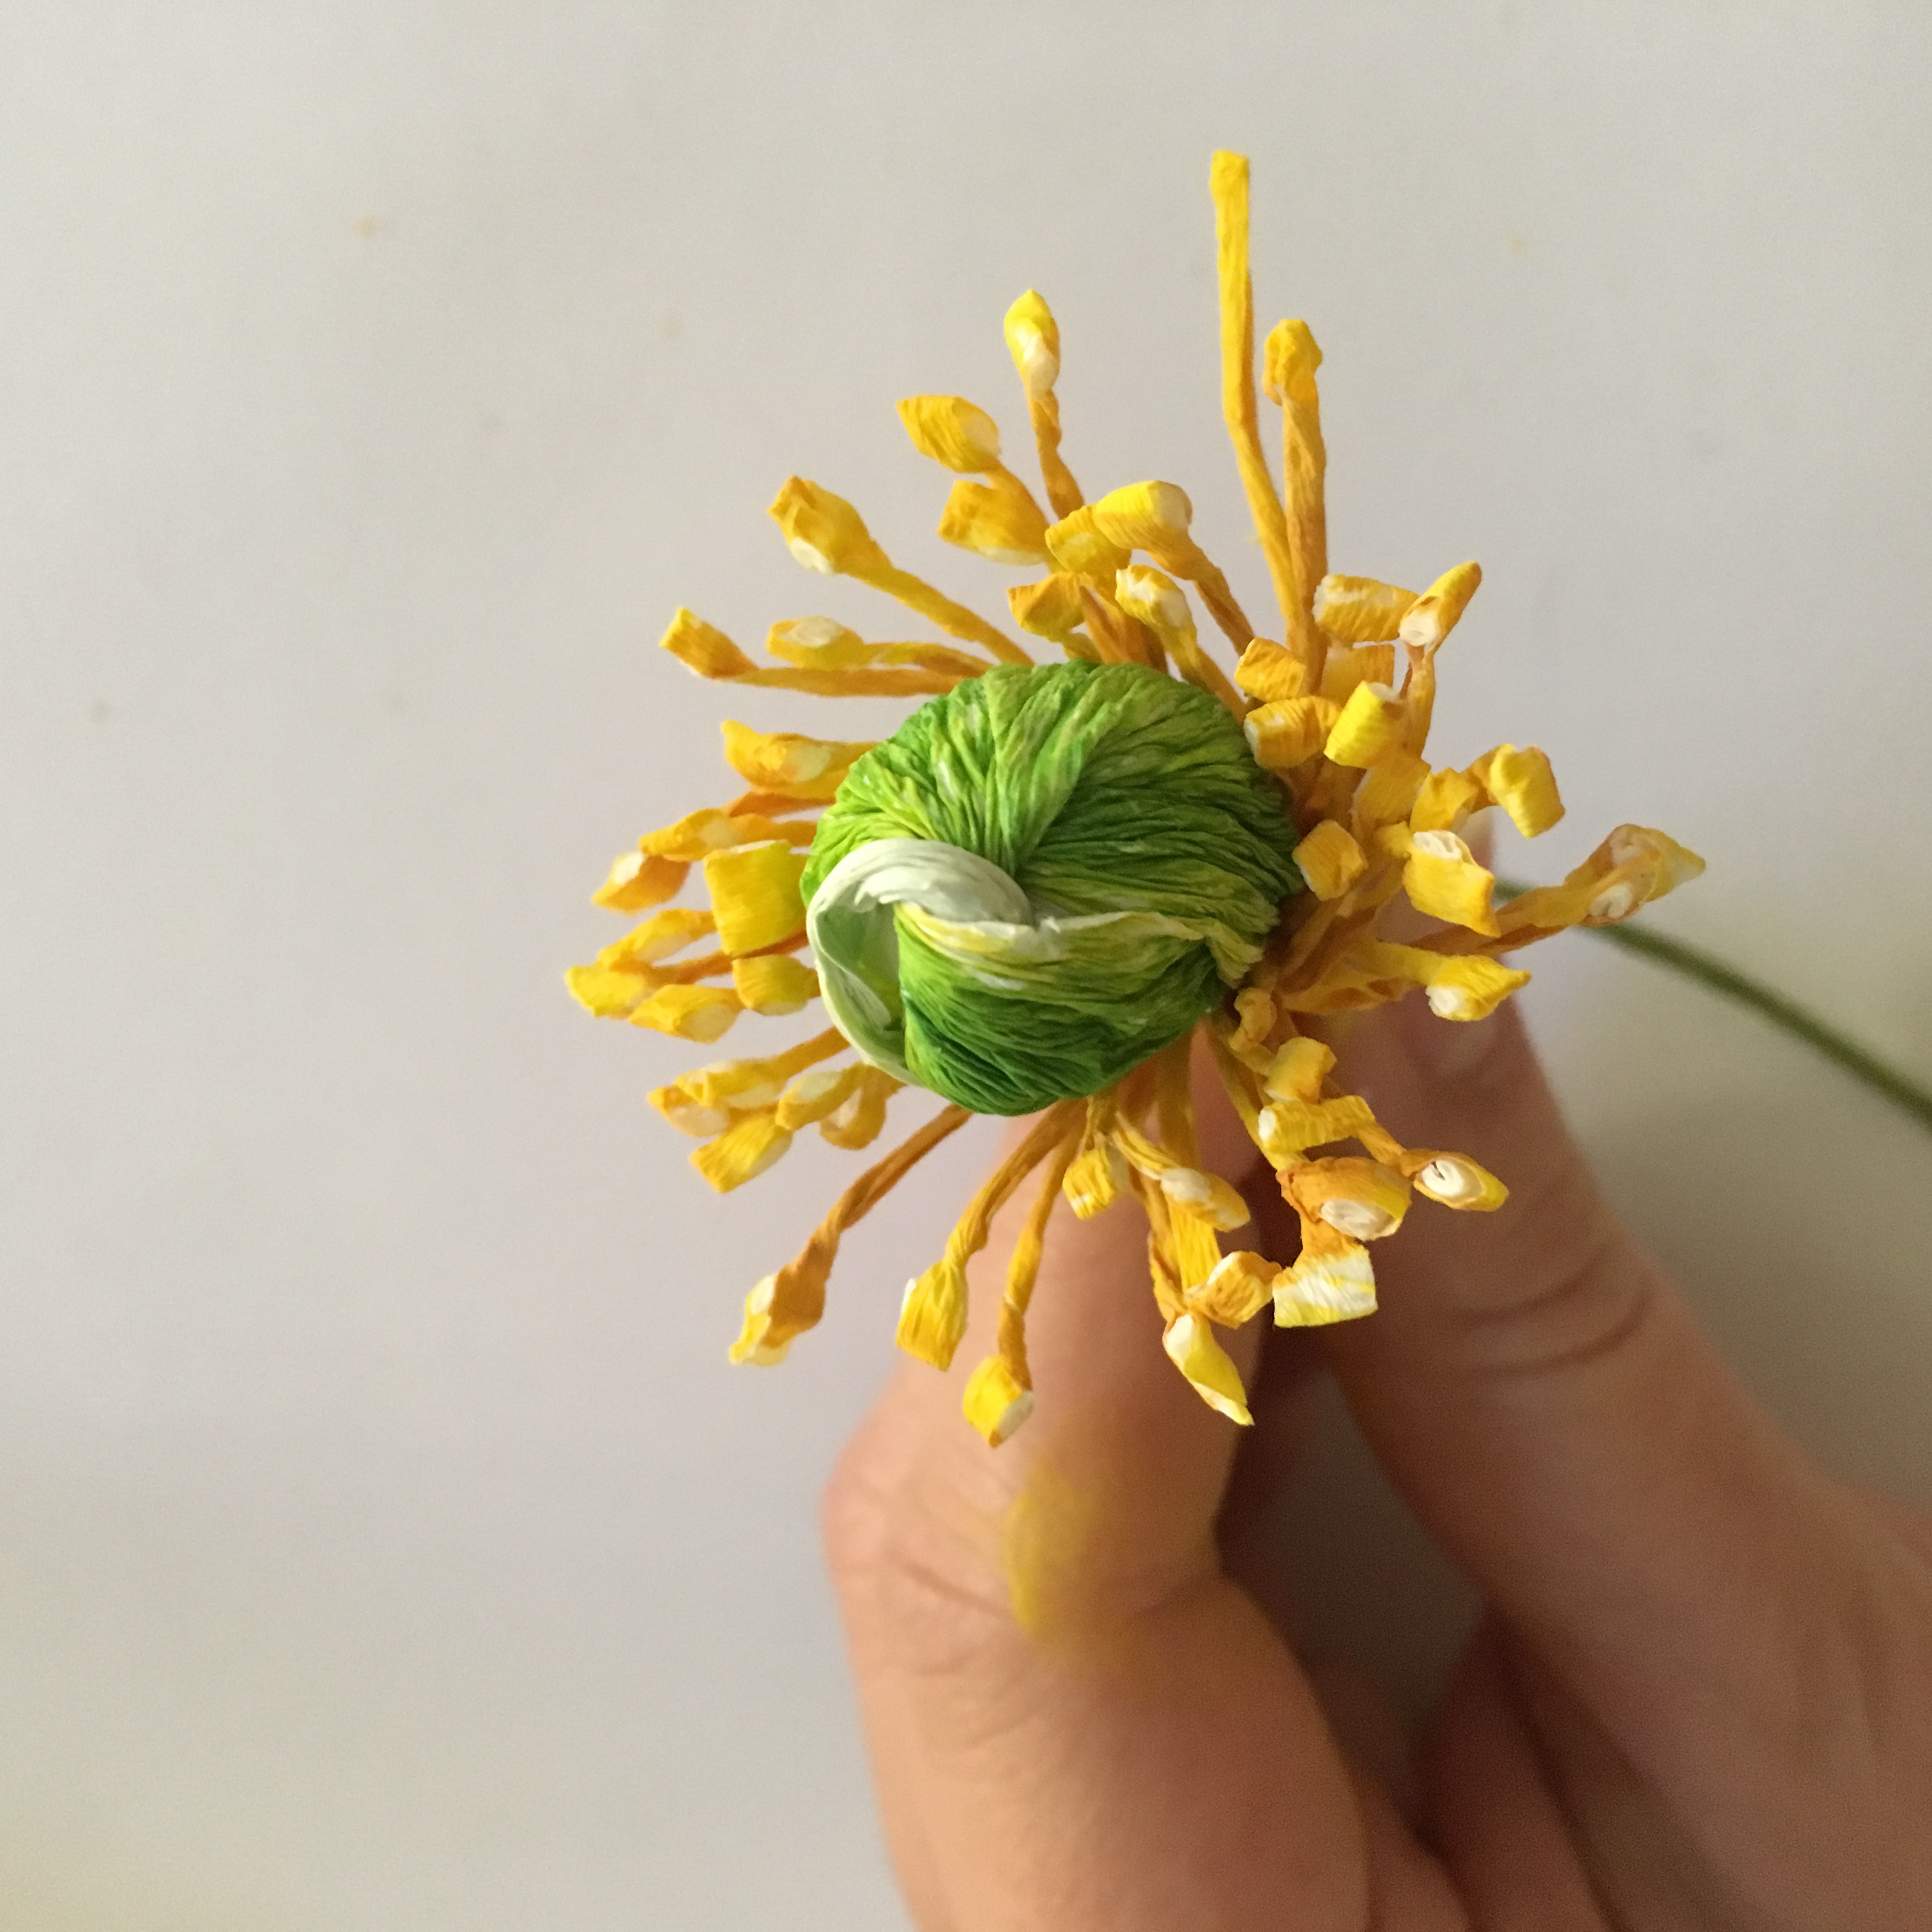 bulb and stamens